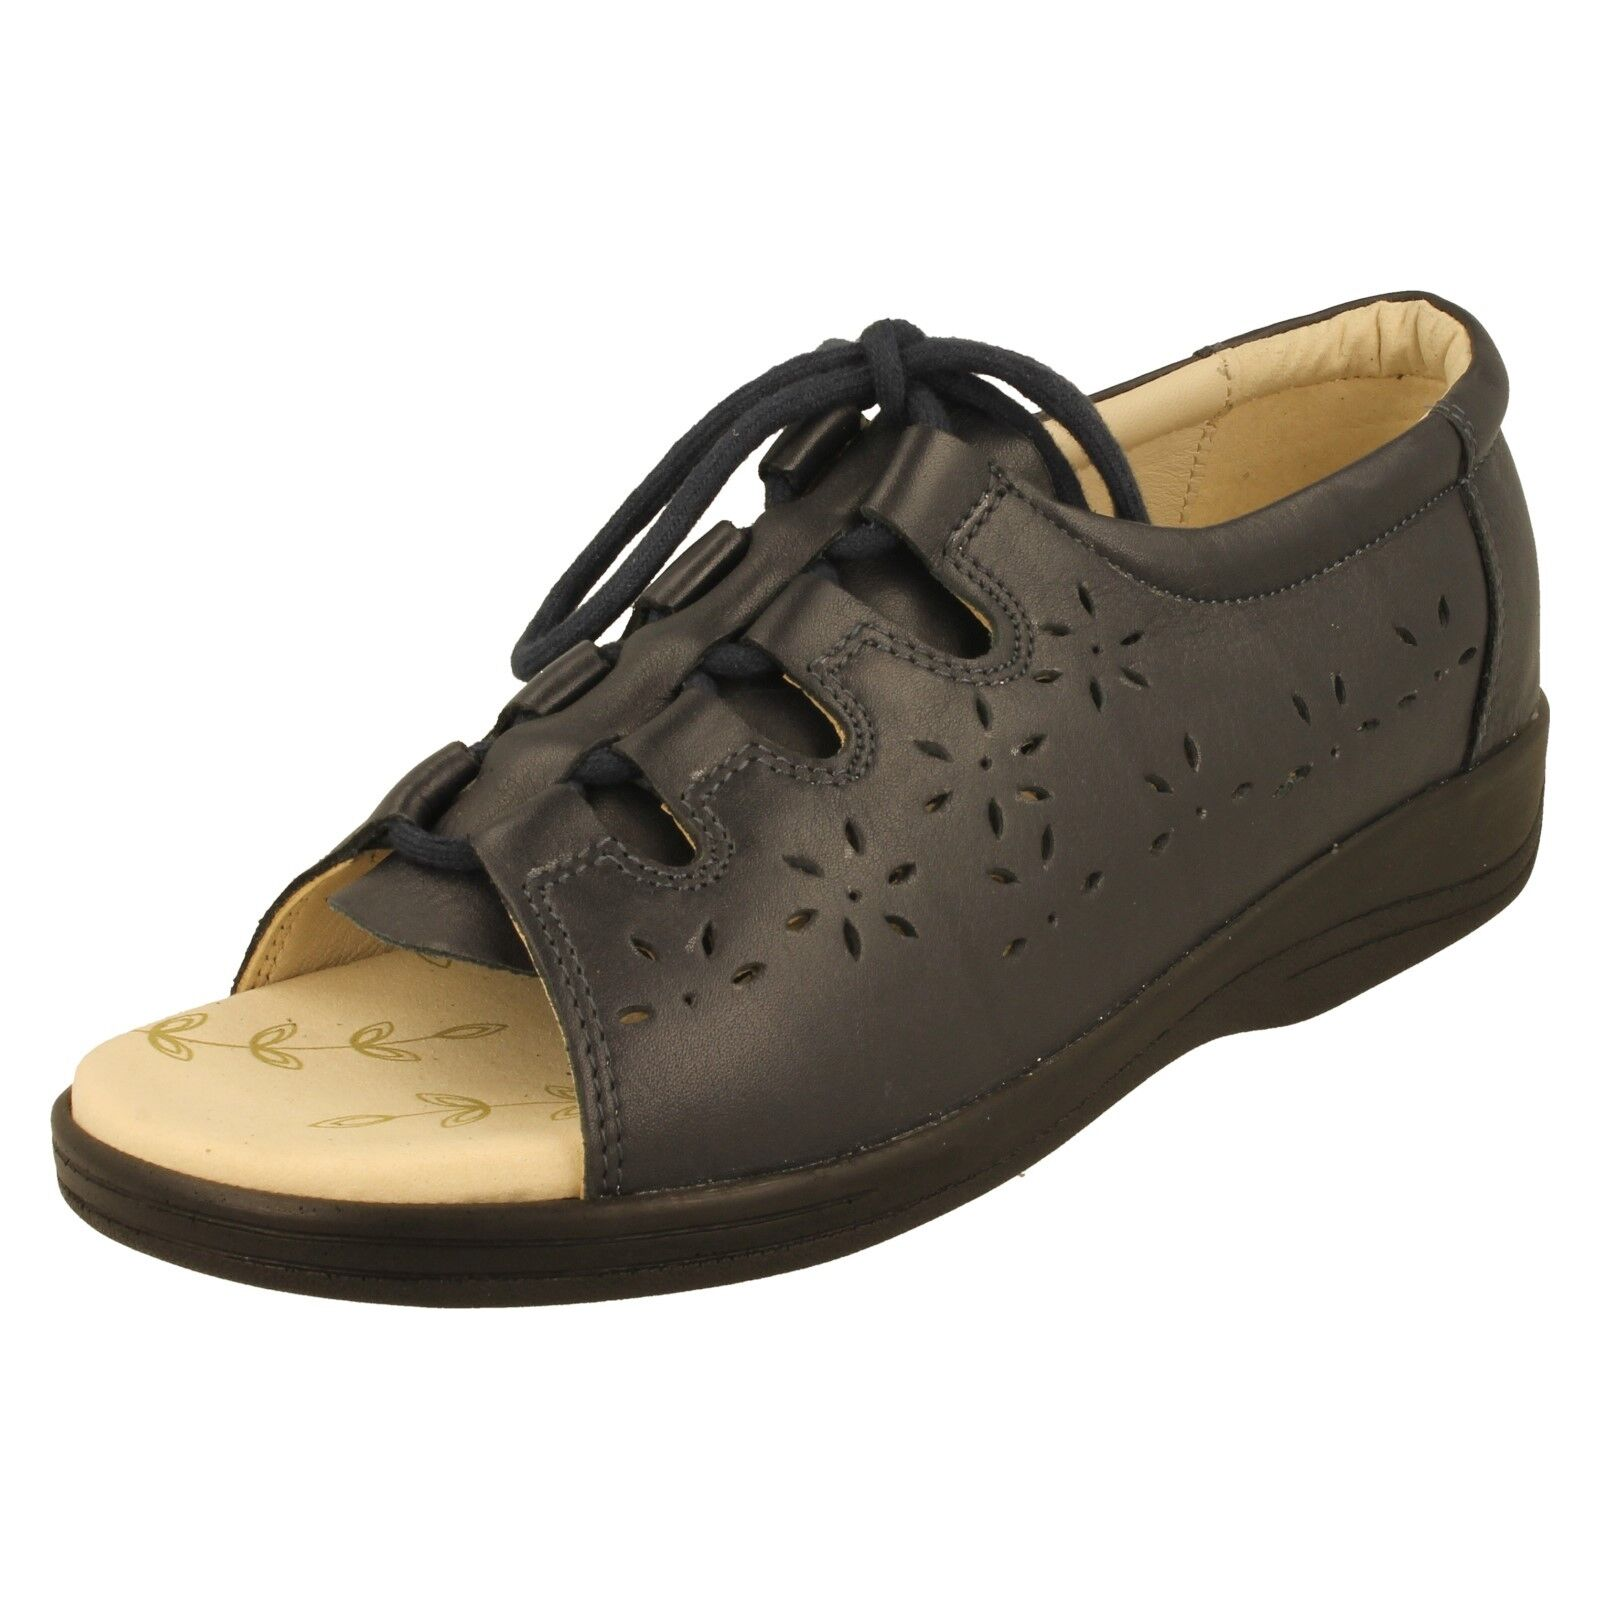 Padders Women Leather Very Comfortable (2e) Casual Summer Sandals-Costa